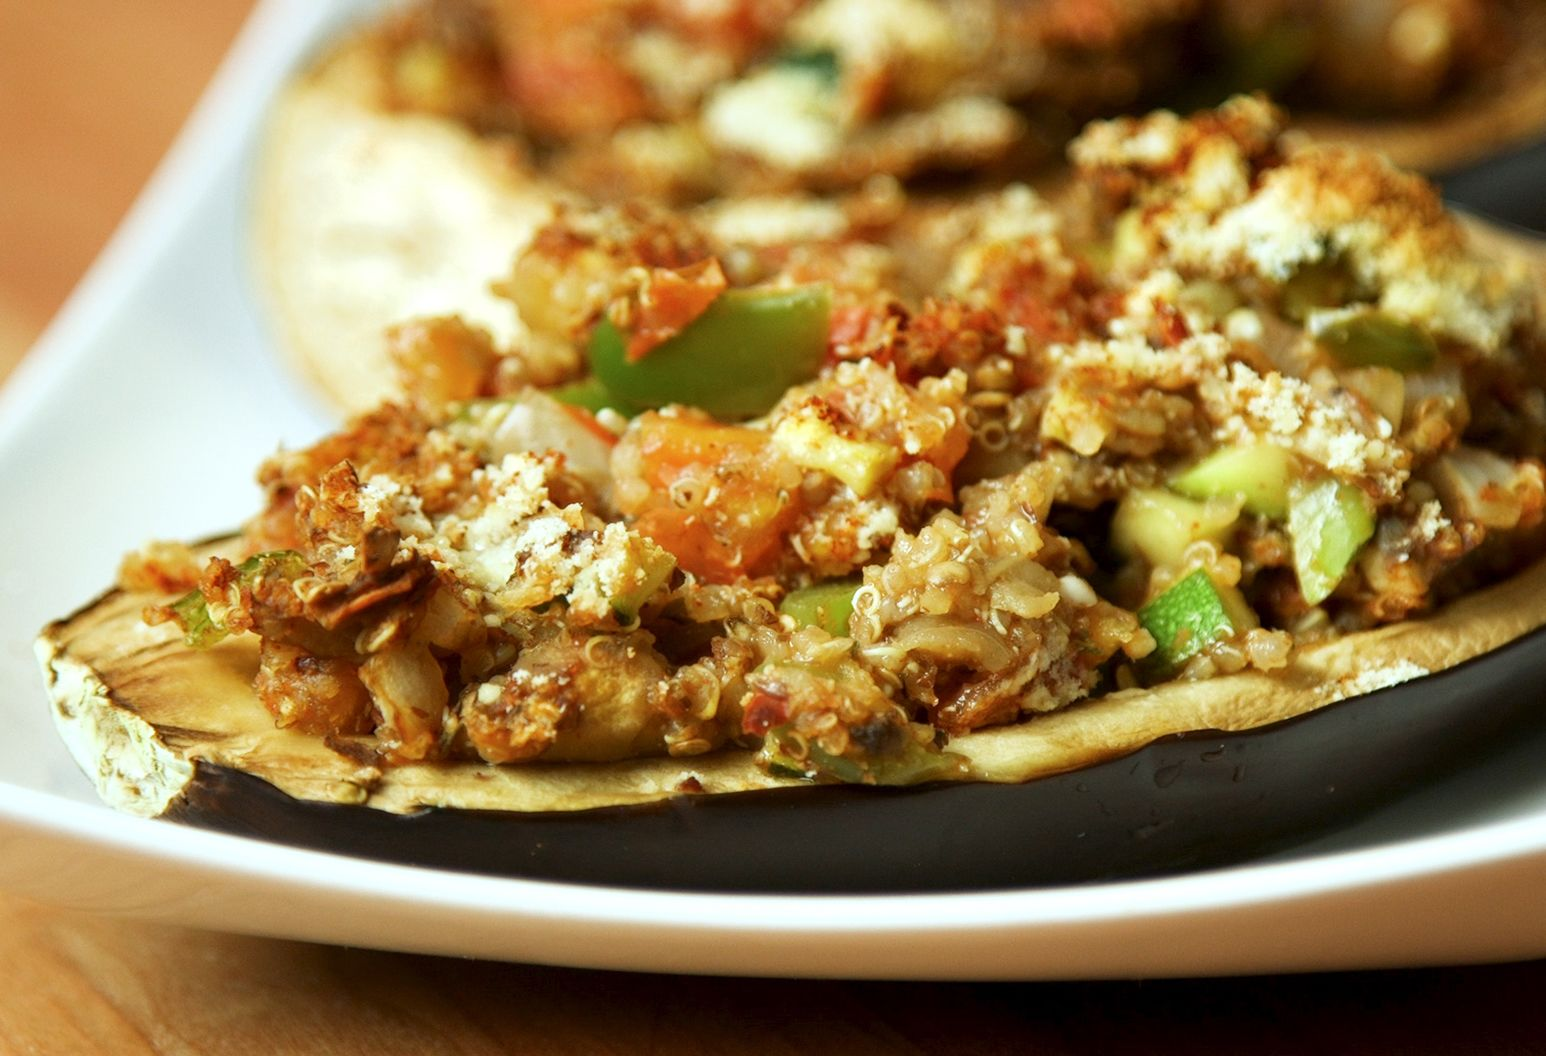 A close-up of quinoa and veggie-stuffed eggplant